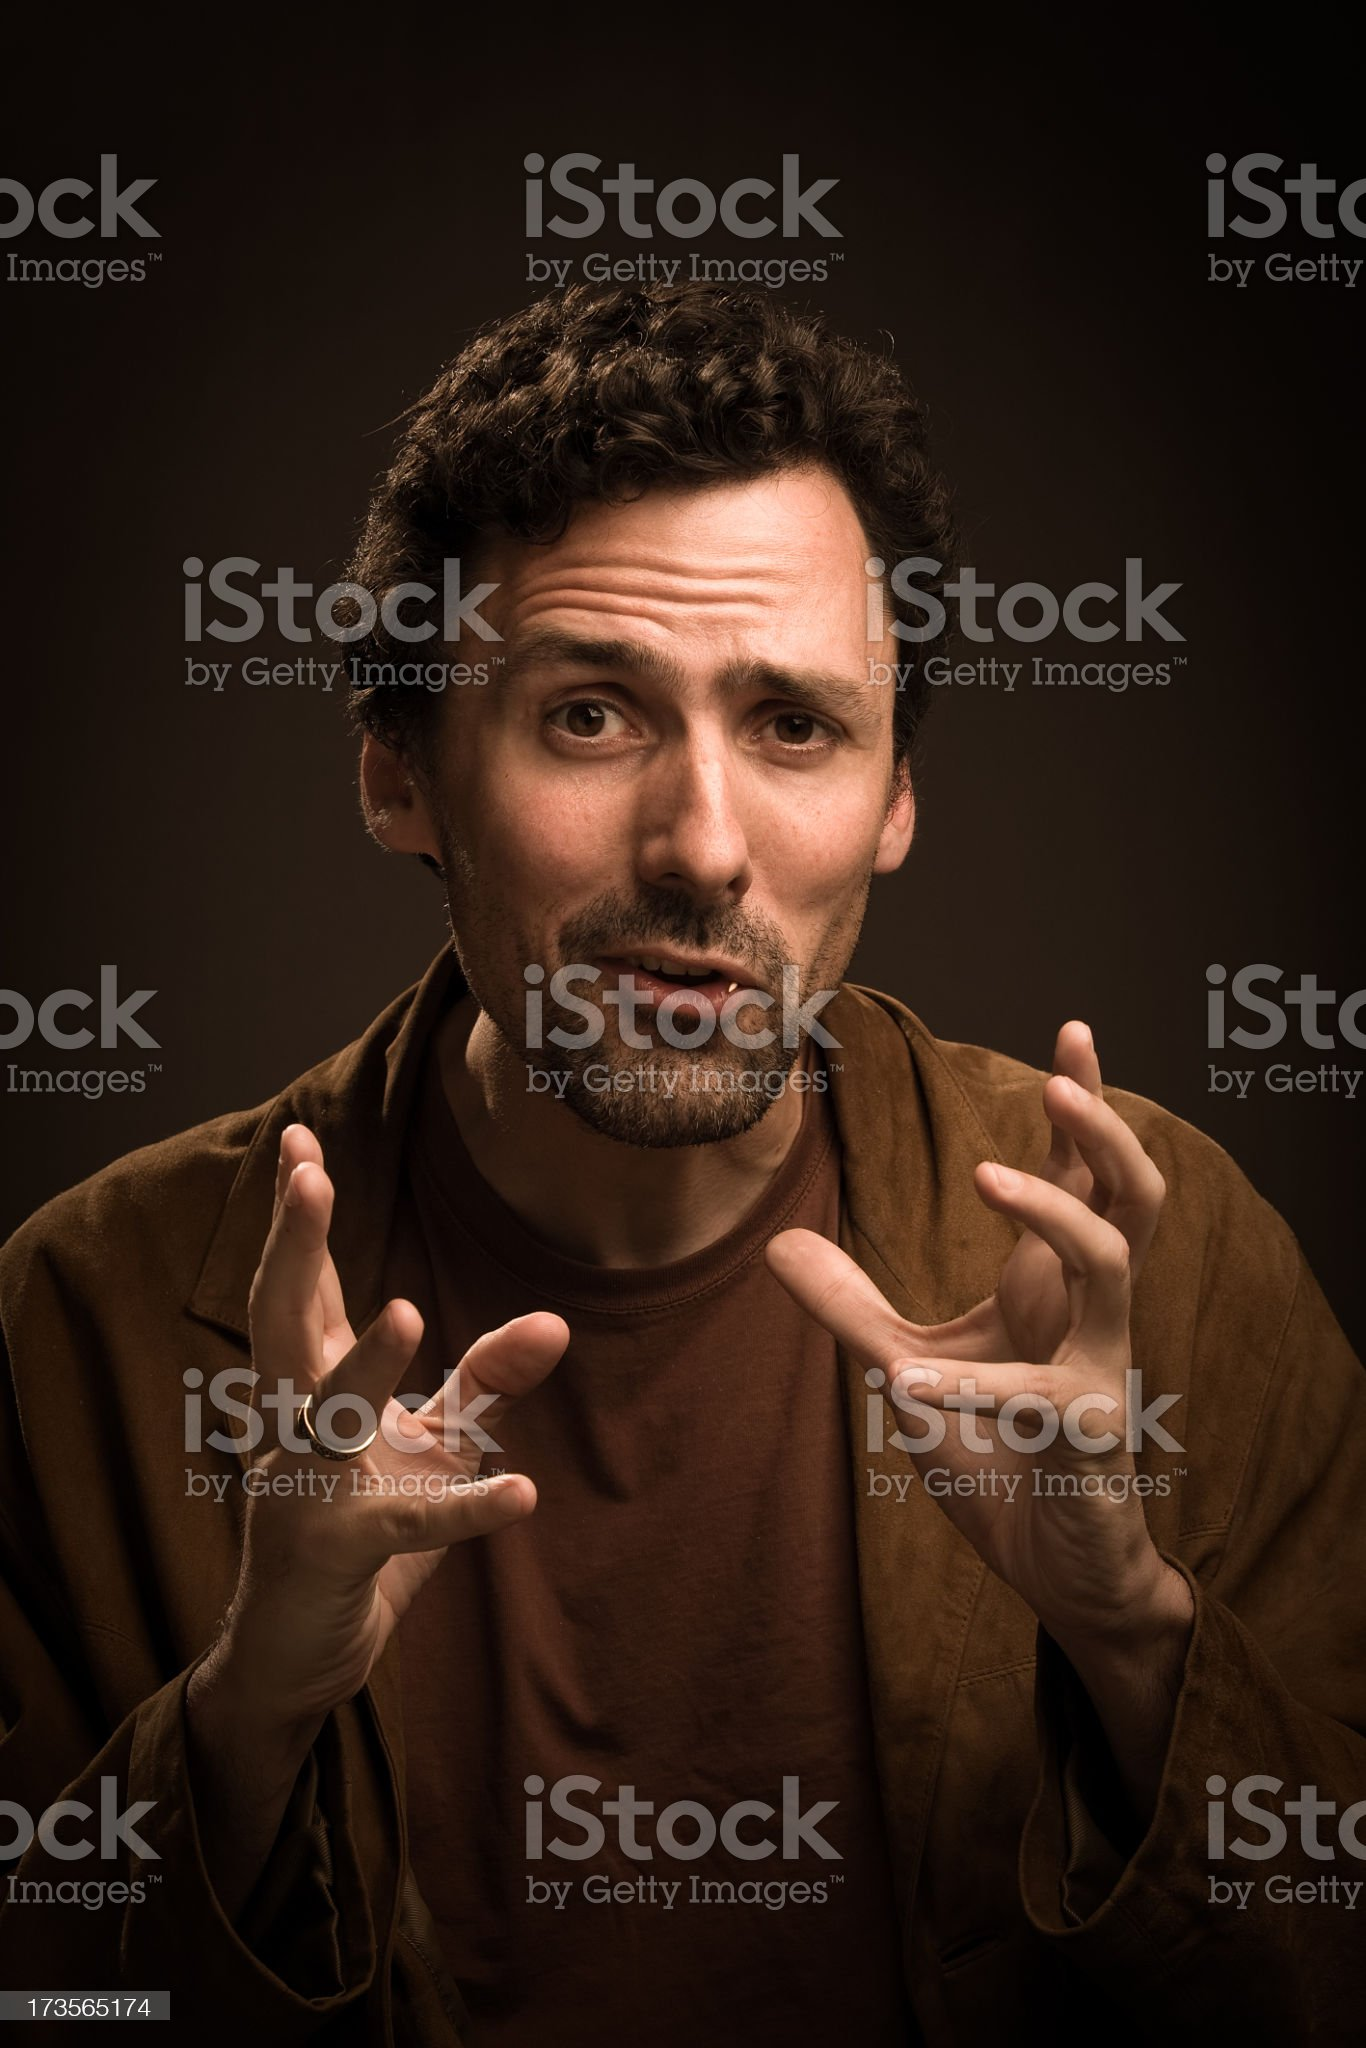 Man with an intense expression and hands raised royalty-free stock photo